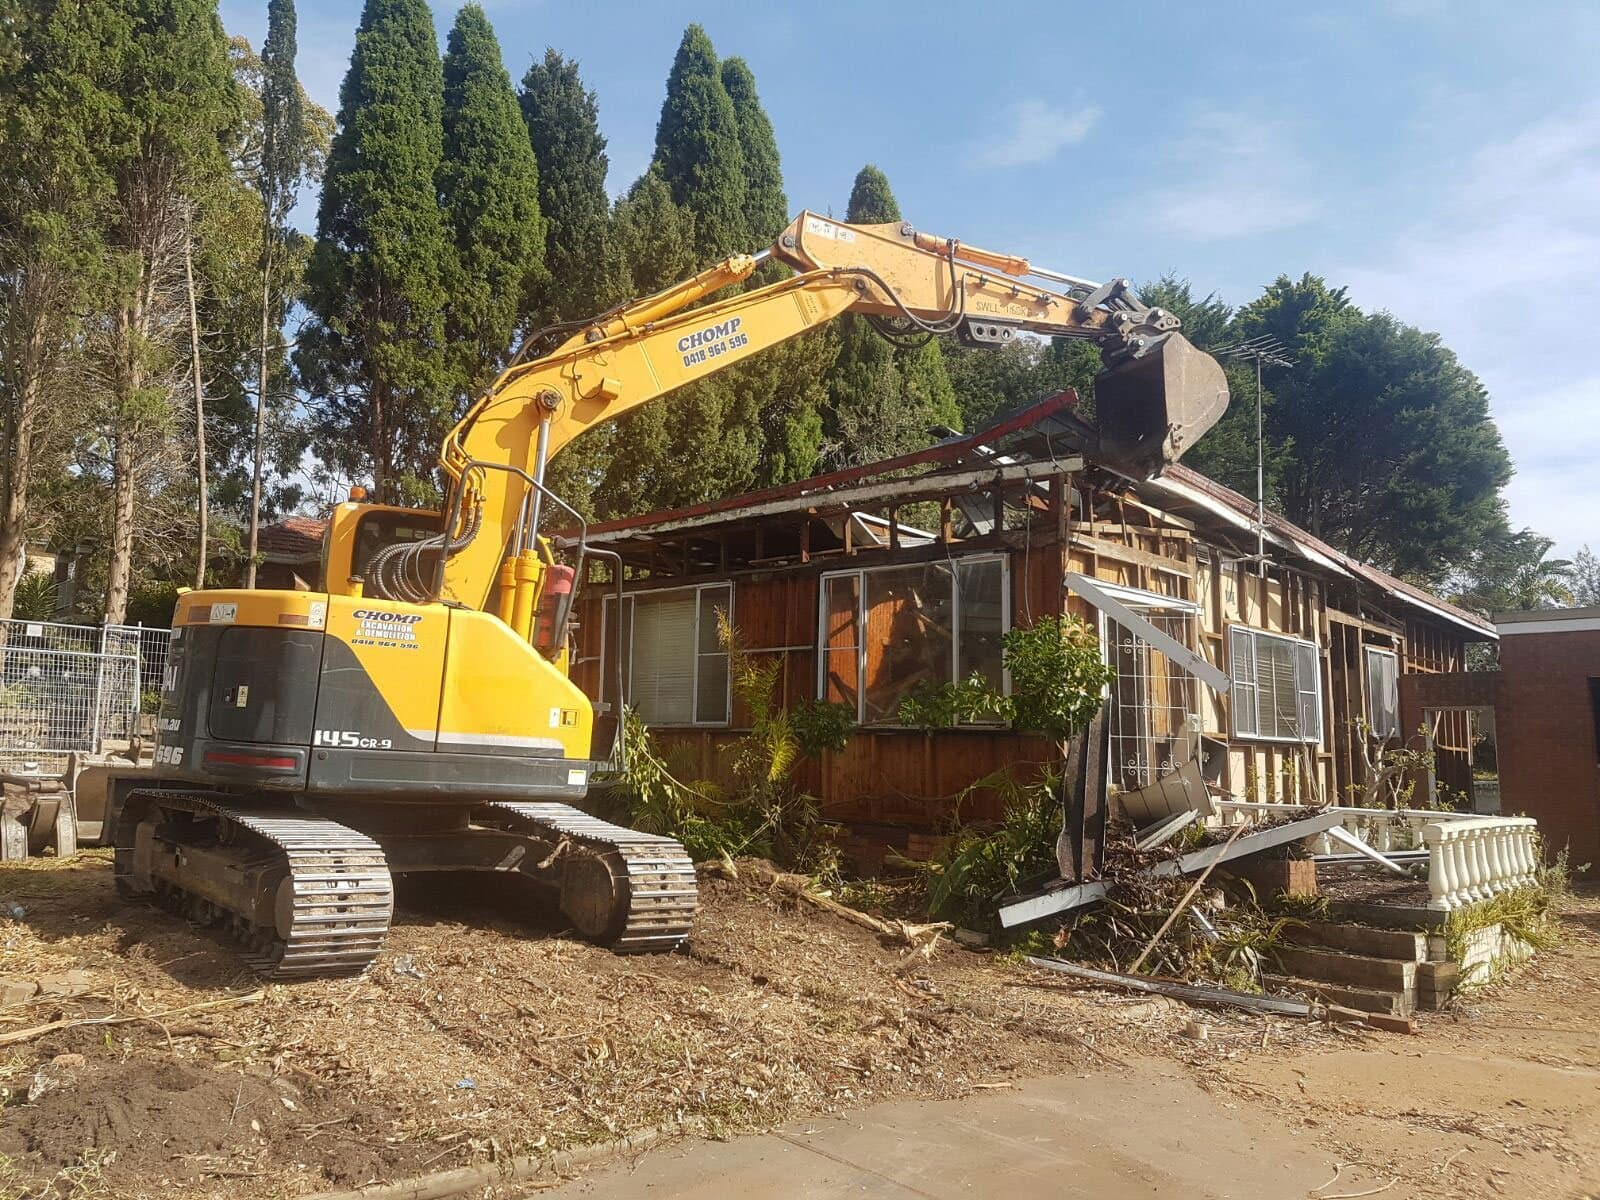 Carrying Out House Demolition In The Safest Way Possible